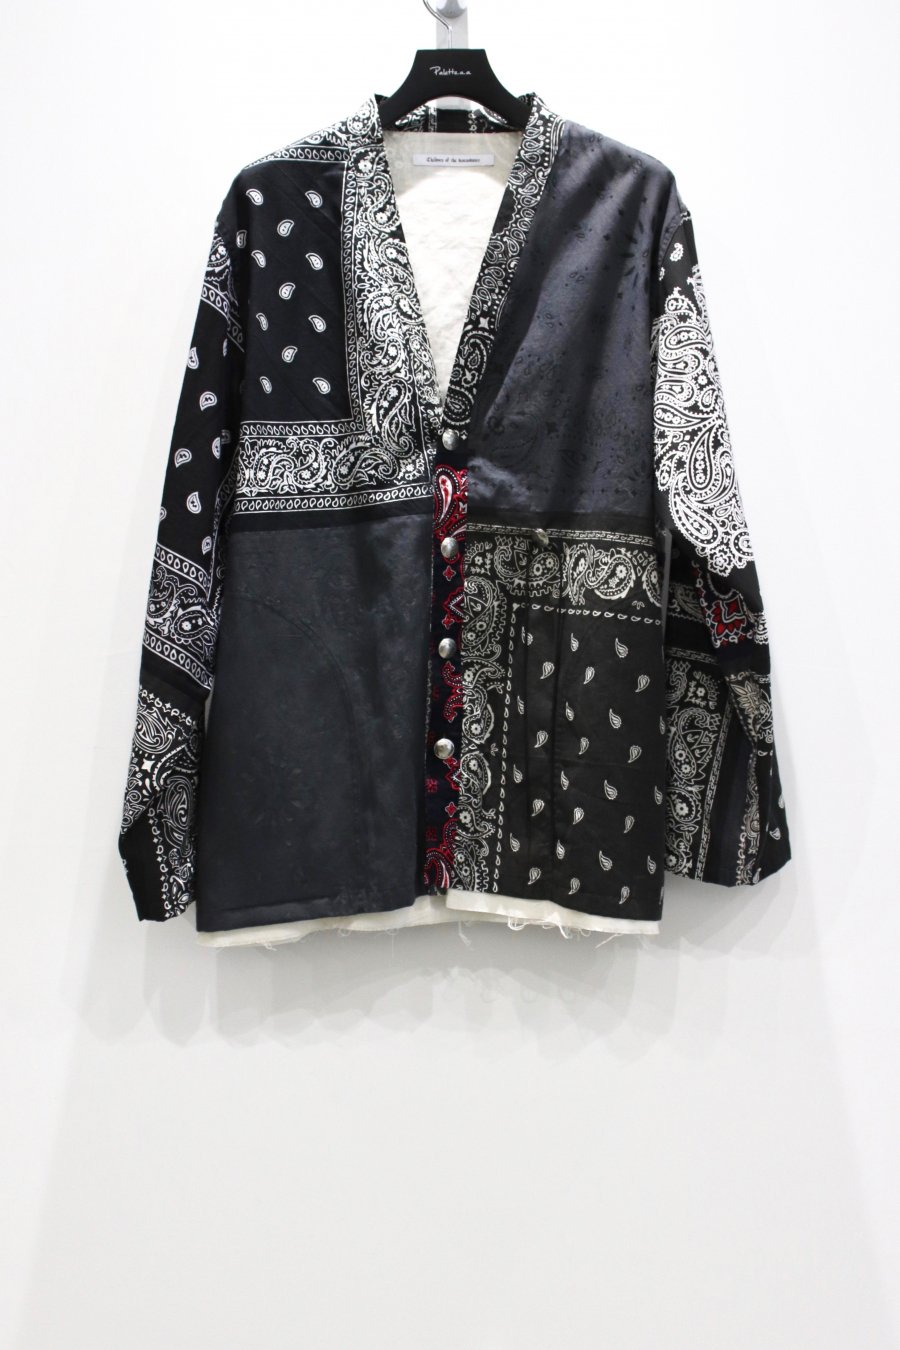 Children of the discordance  BANDANA PATCHWORK CONCHO JACKET(BLACK)<img class='new_mark_img2' src='https://img.shop-pro.jp/img/new/icons15.gif' style='border:none;display:inline;margin:0px;padding:0px;width:auto;' />